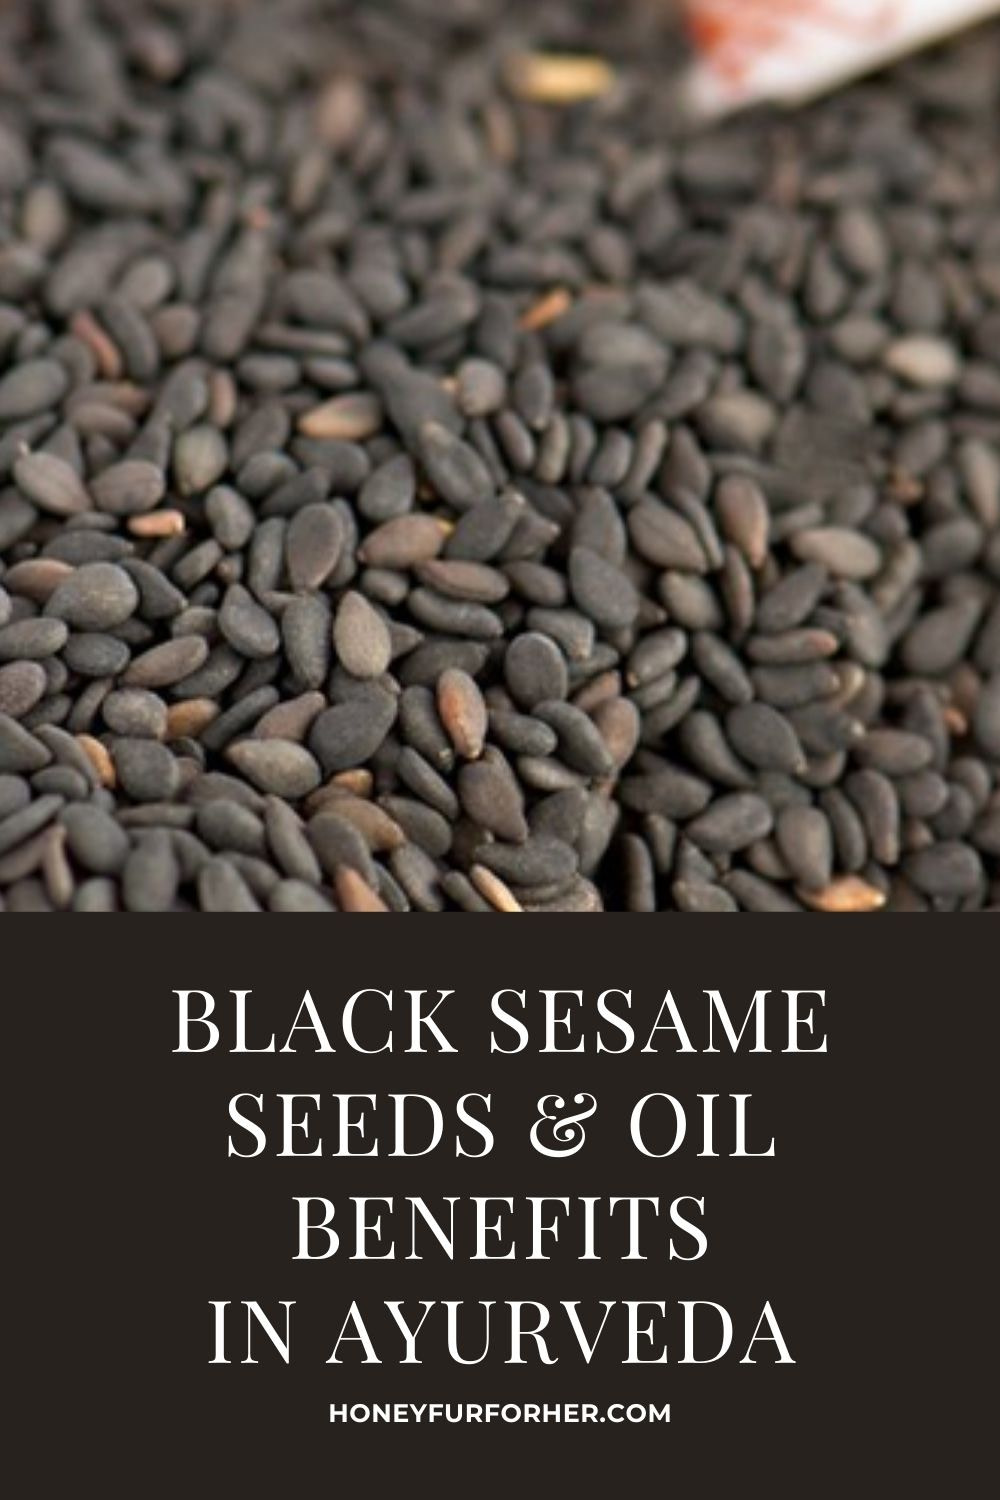 Black Sesame Oil And Seeds Benefits In Ayurveda Pinterest Pin 1